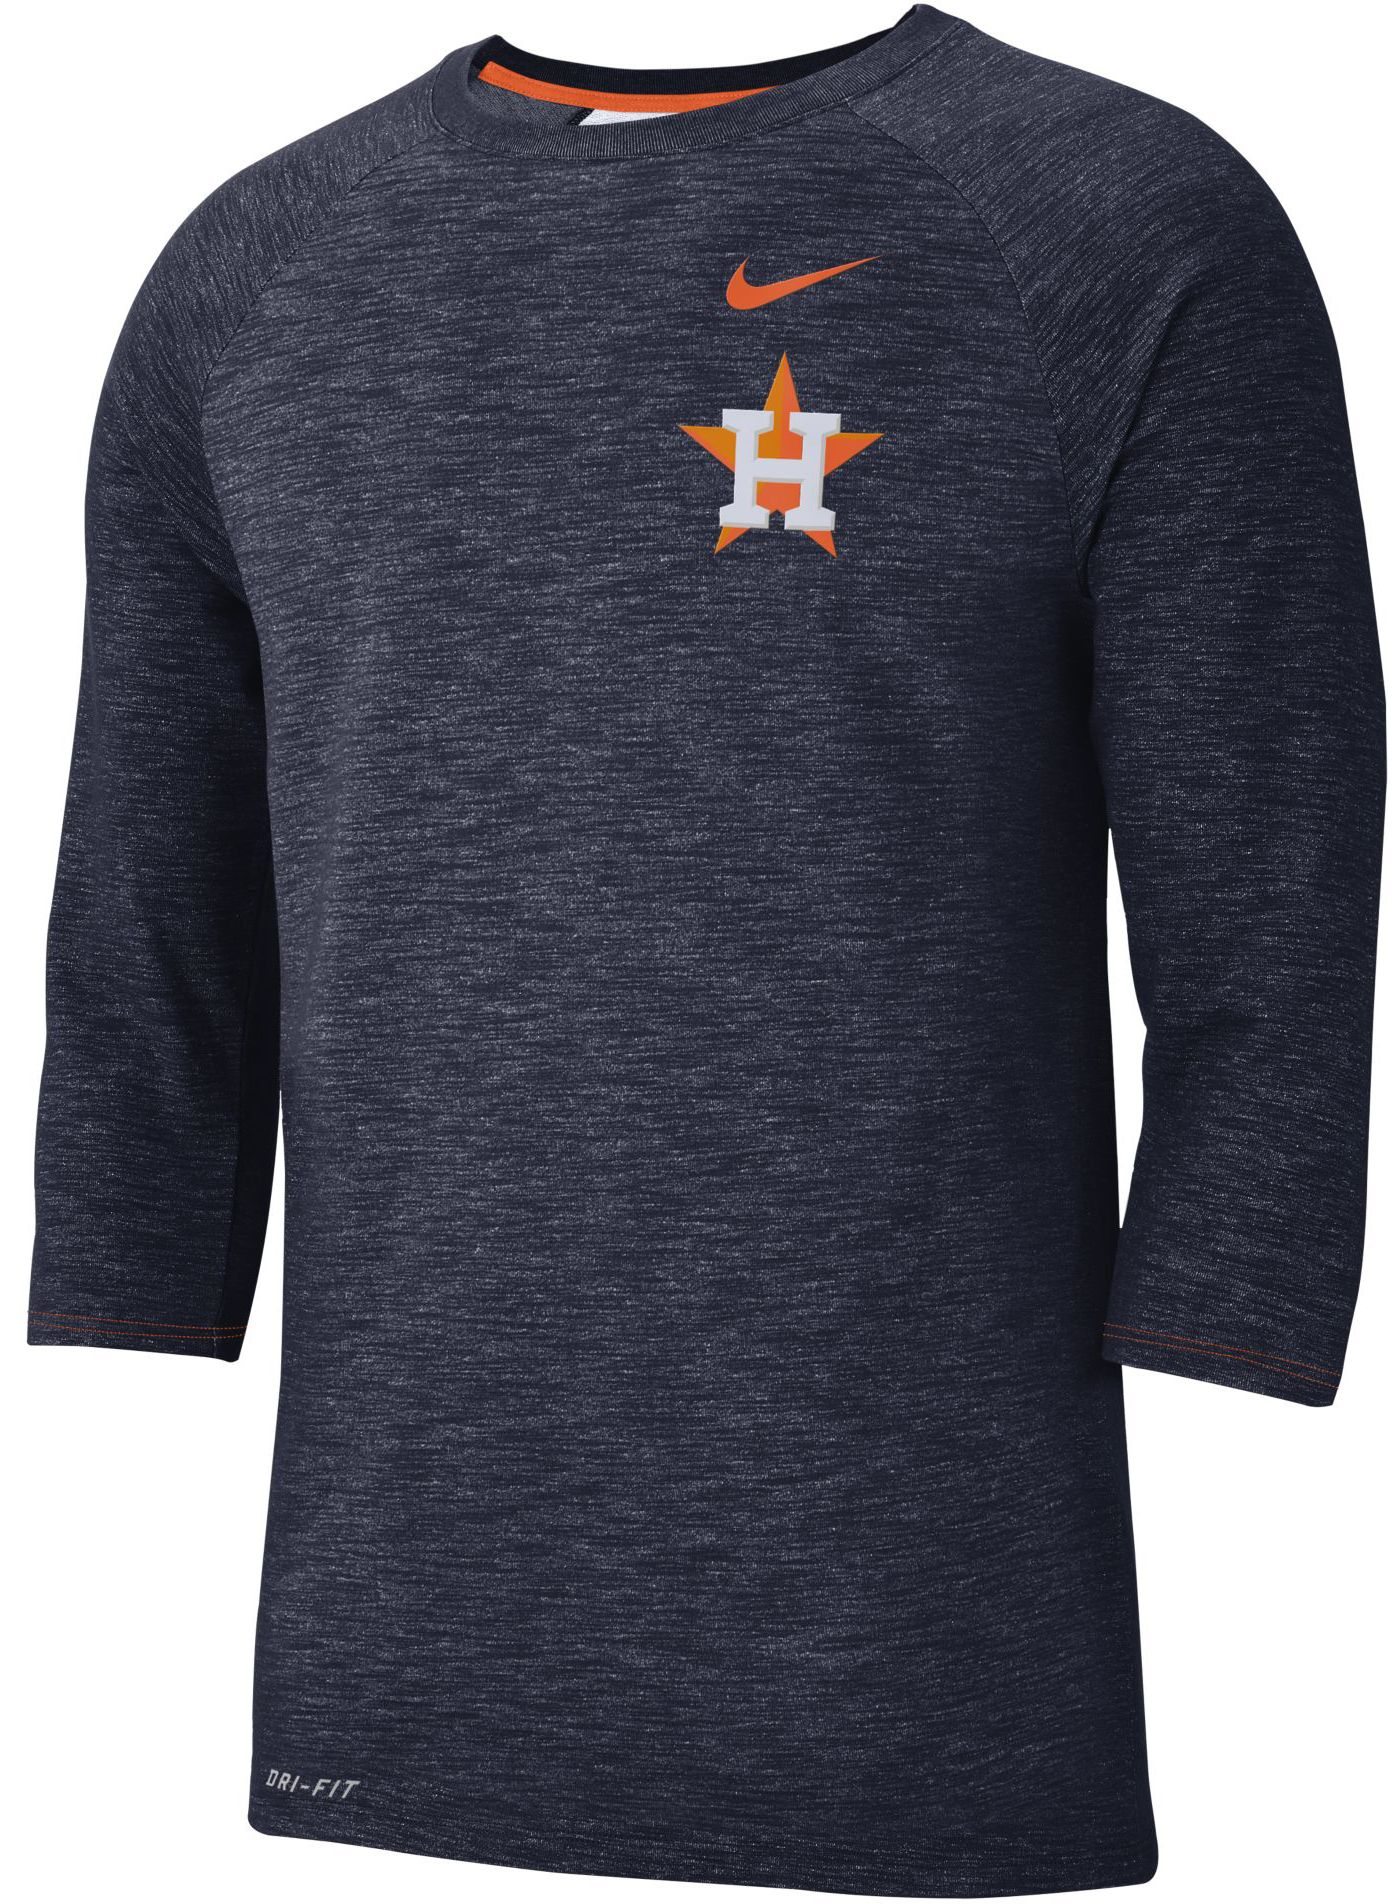 Nike Men's Houston Astros Dri-FIT Slub Three-Quarter Sleeve Shirt